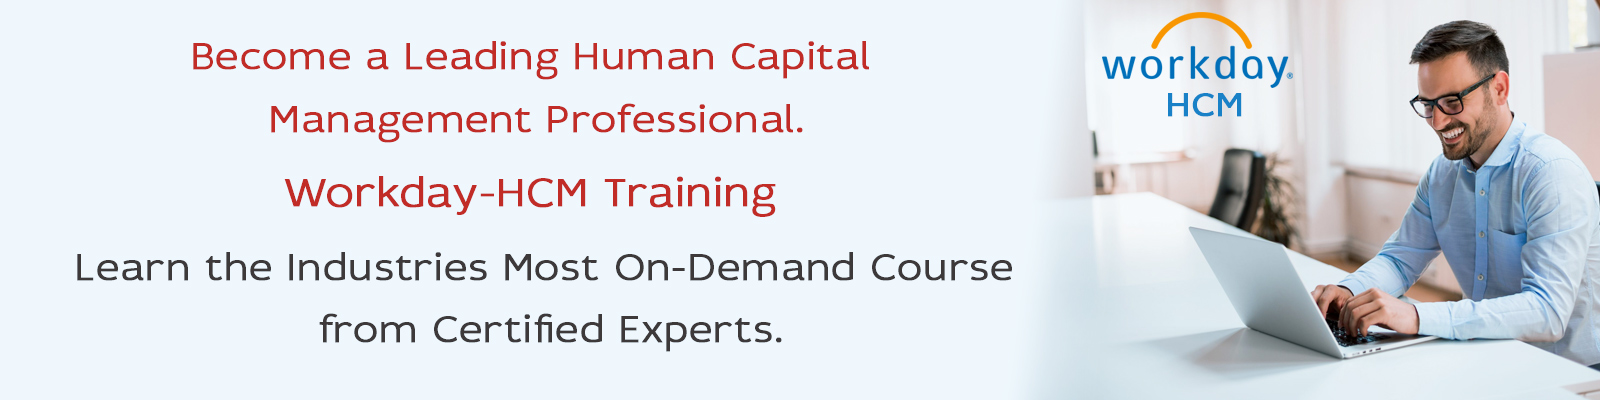 Workday HCM Training & Certification Course Online